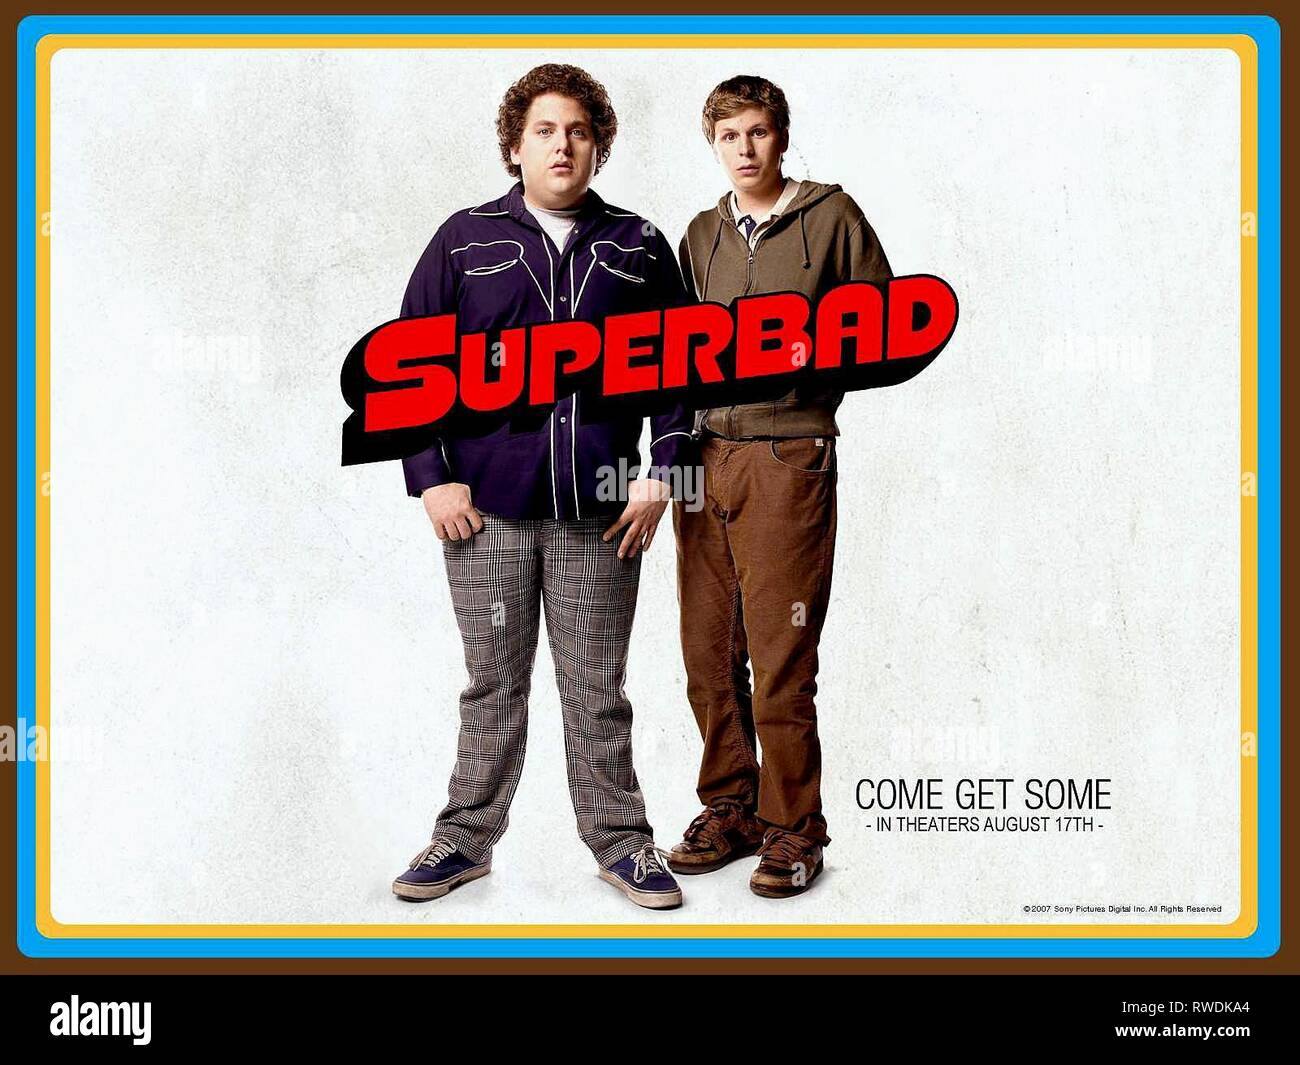 Hill Poster Superbad 2007 Stock Photo Alamy